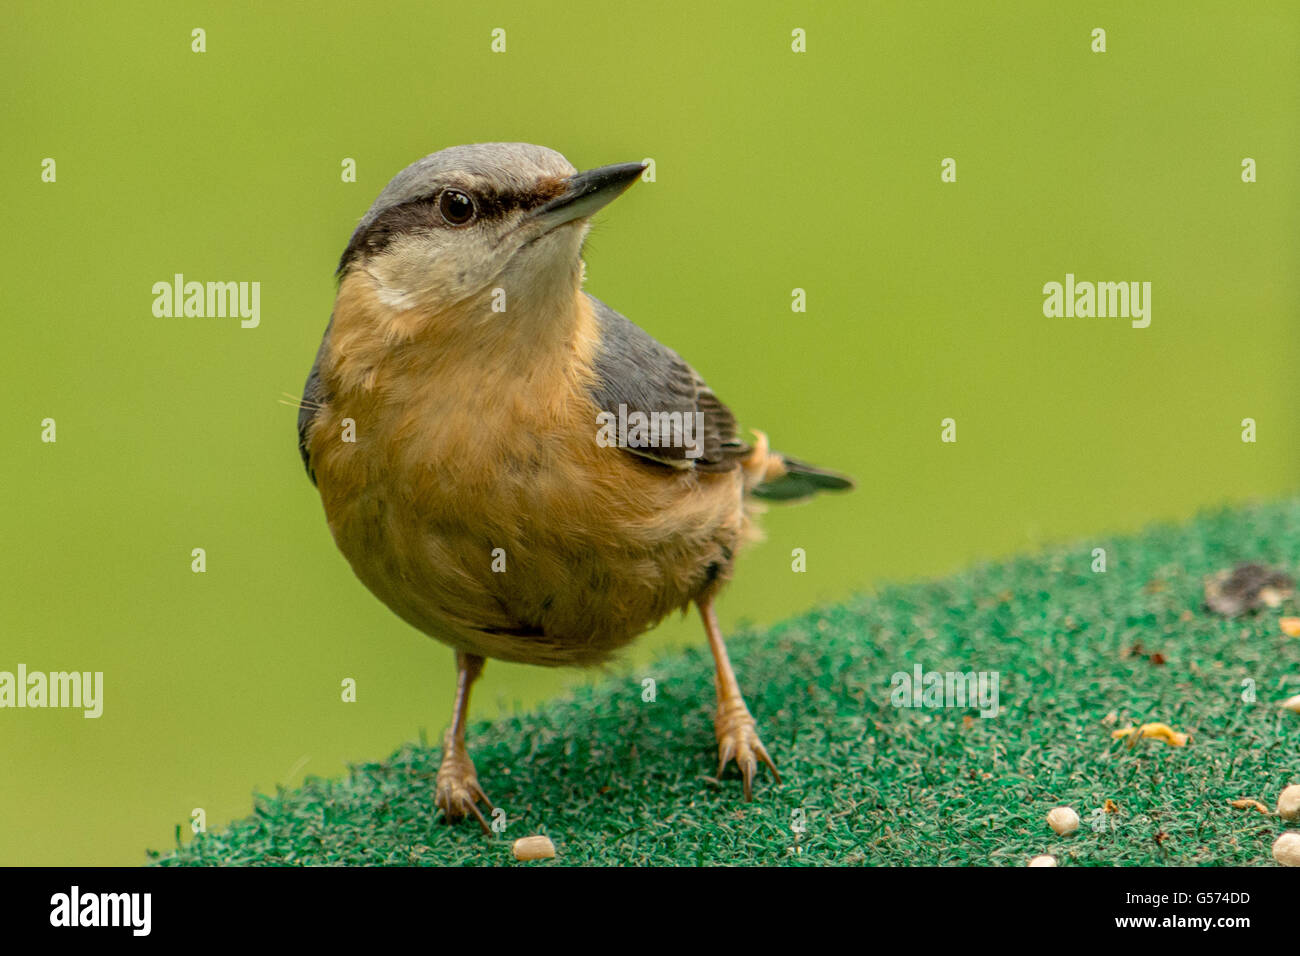 A nuthatch on a feeding table - Stock Image